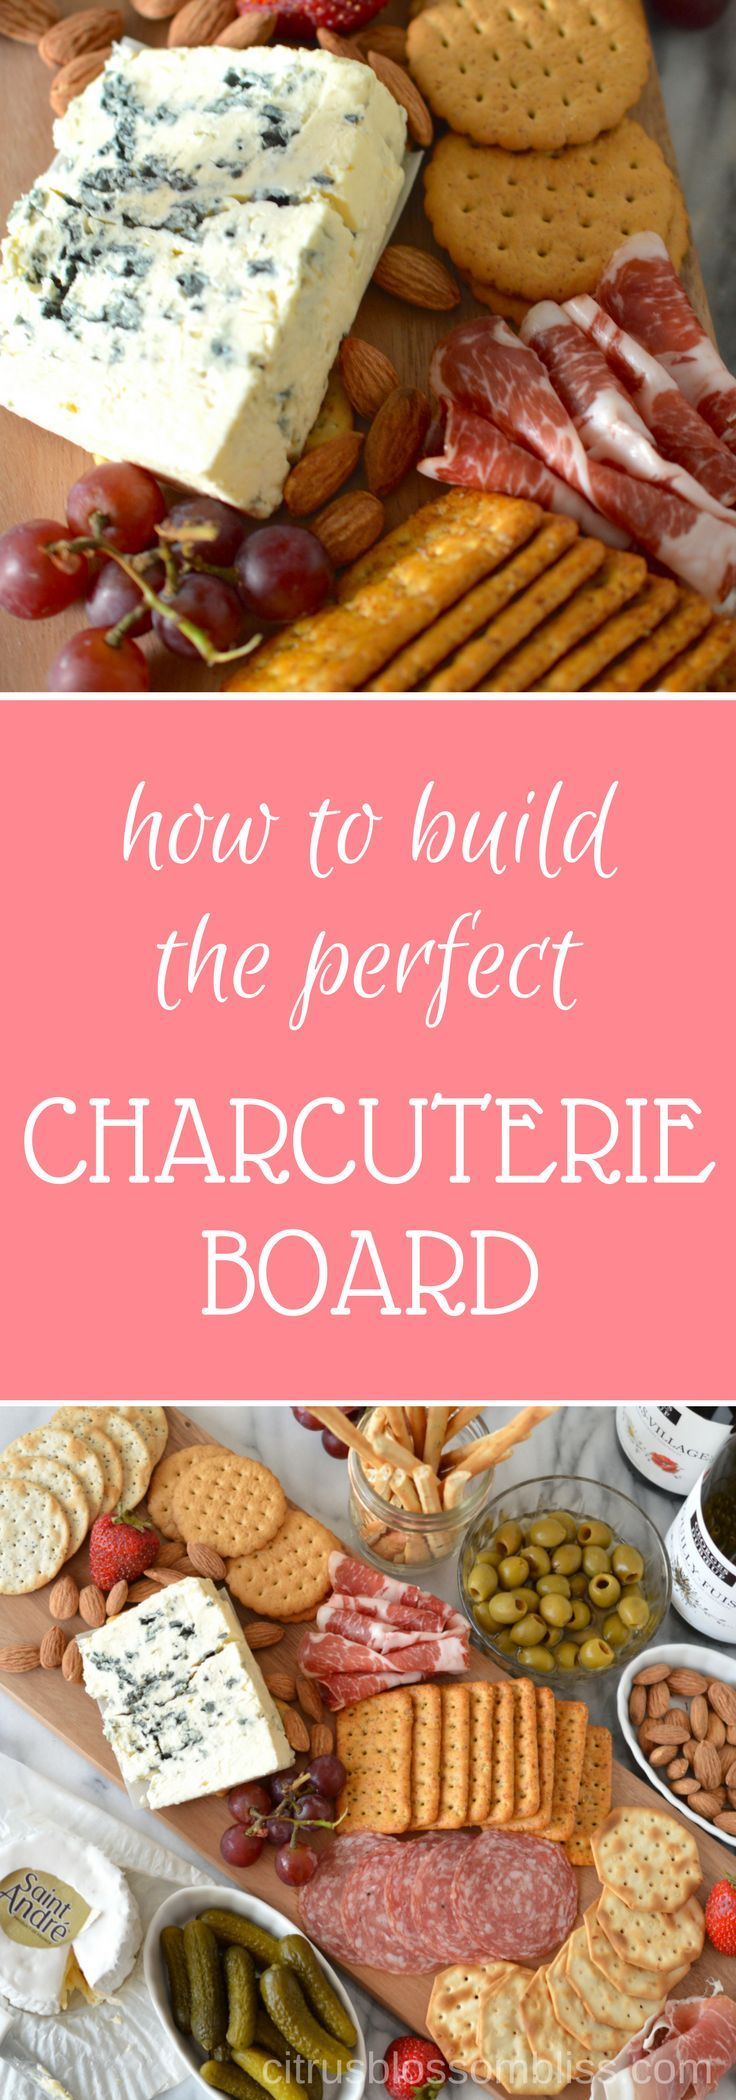 Love entertaining? The Perfect Charcuterie Board is easy to whip together and will be the hit of your next gathering!  #MadeInFrance #MadeWithLove #ad